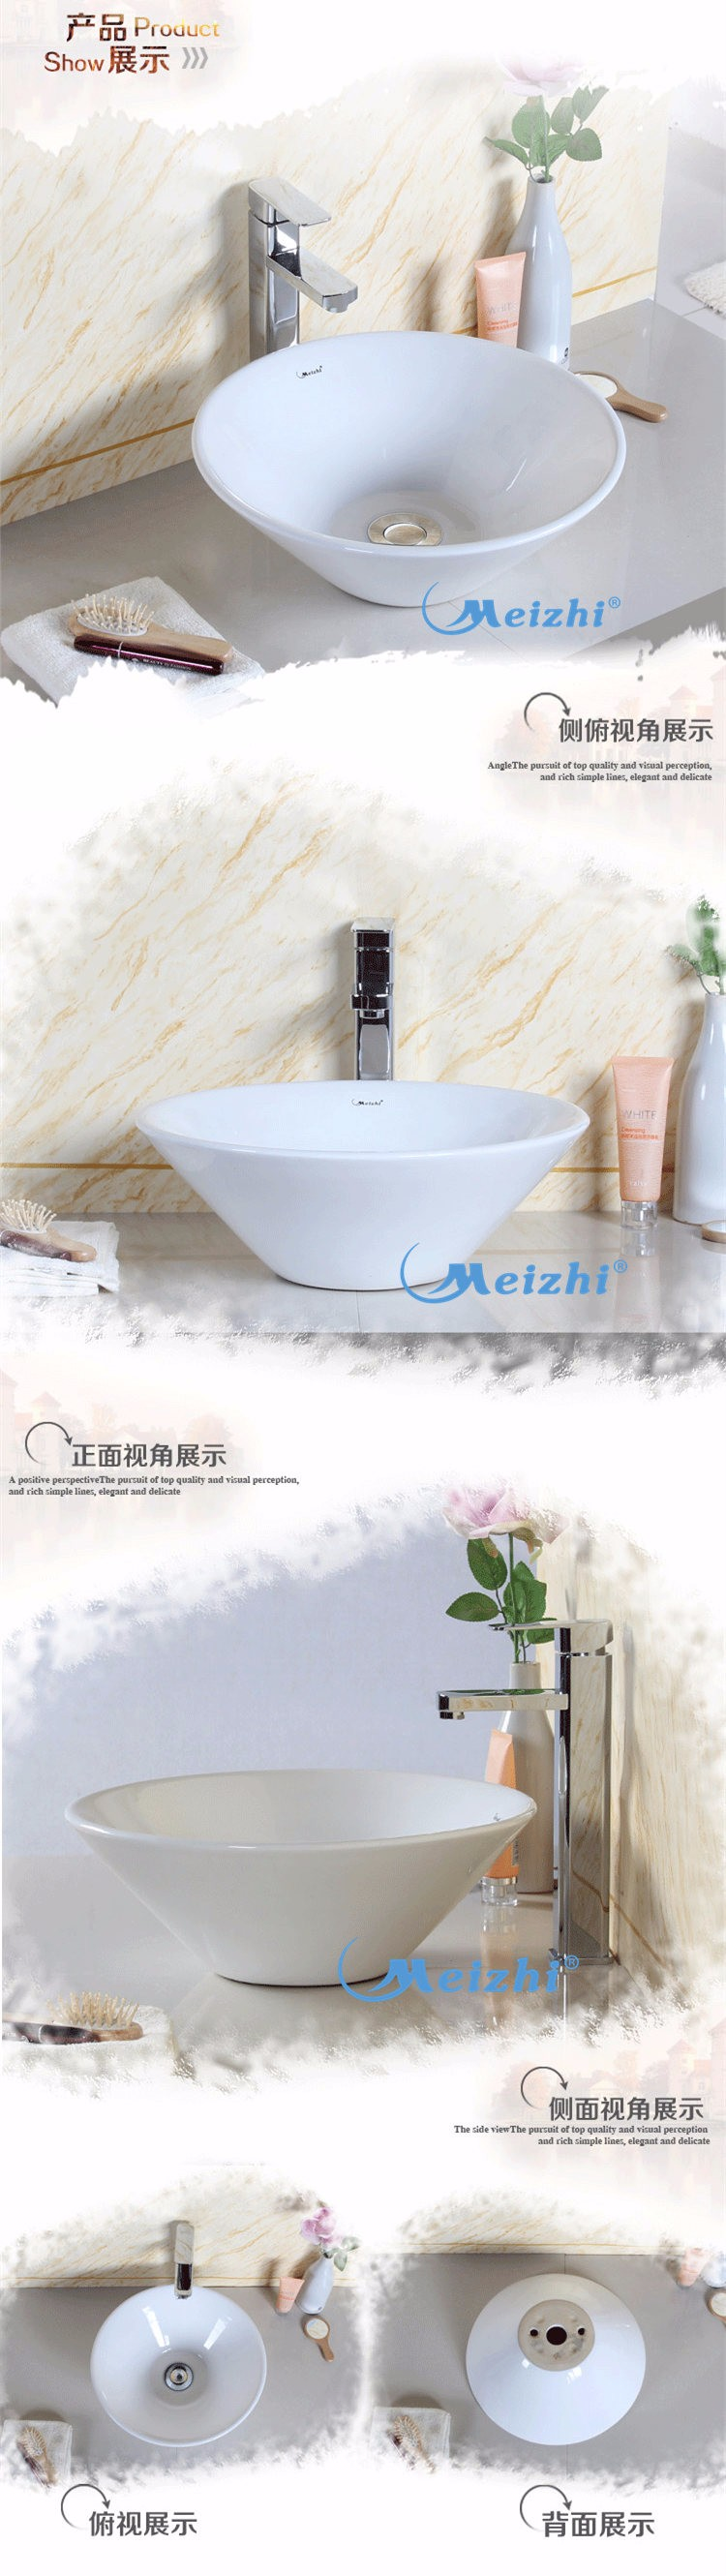 Bathroom sanitary ware wash basin india